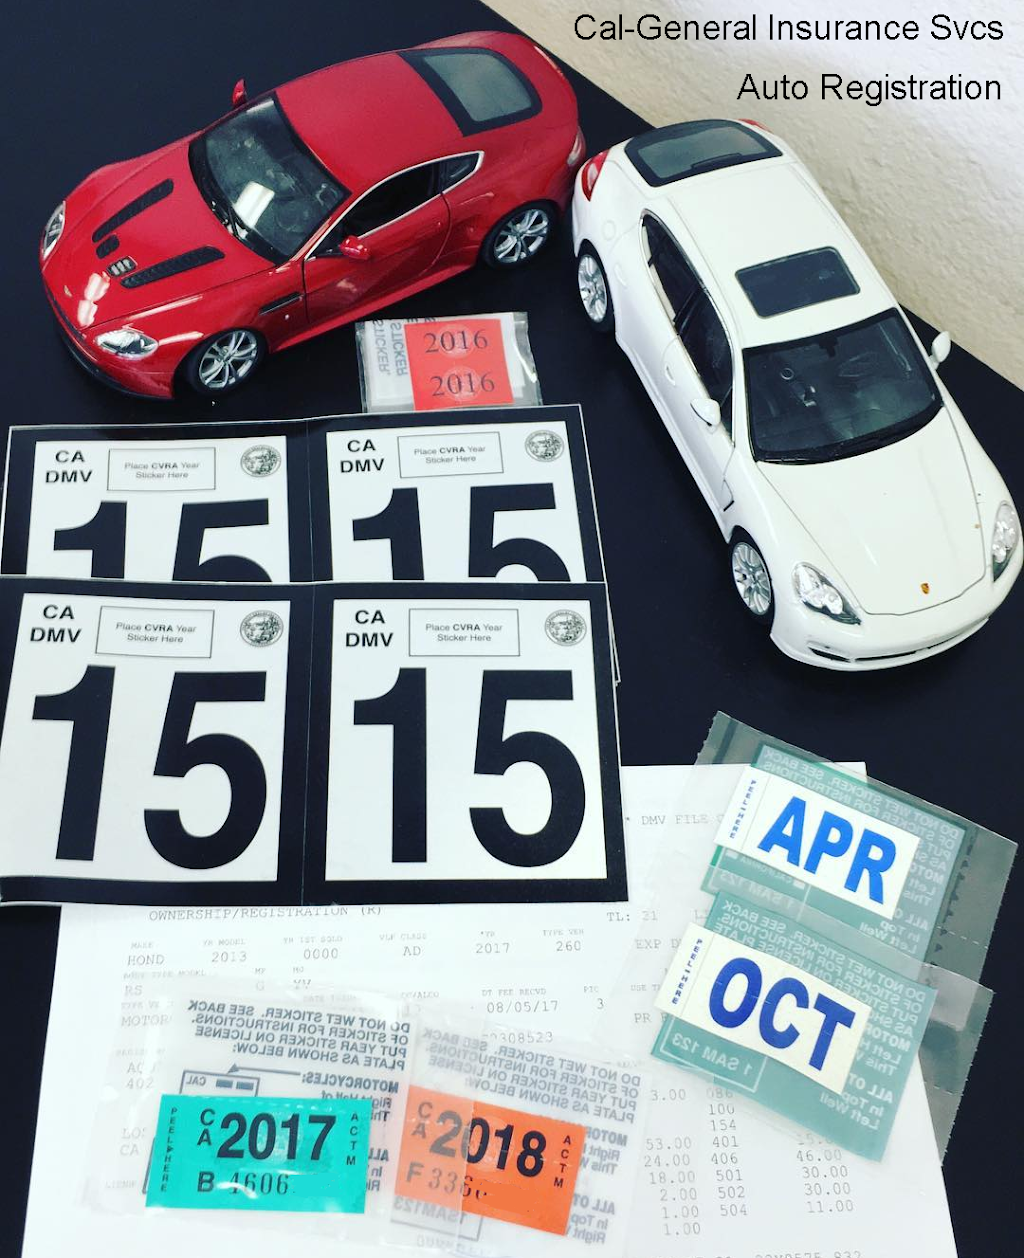 Car Registration Services   insurance agency   1110 N Western Ave # 106, Los Angeles, CA 90029, USA   3234671400 OR +1 323-467-1400